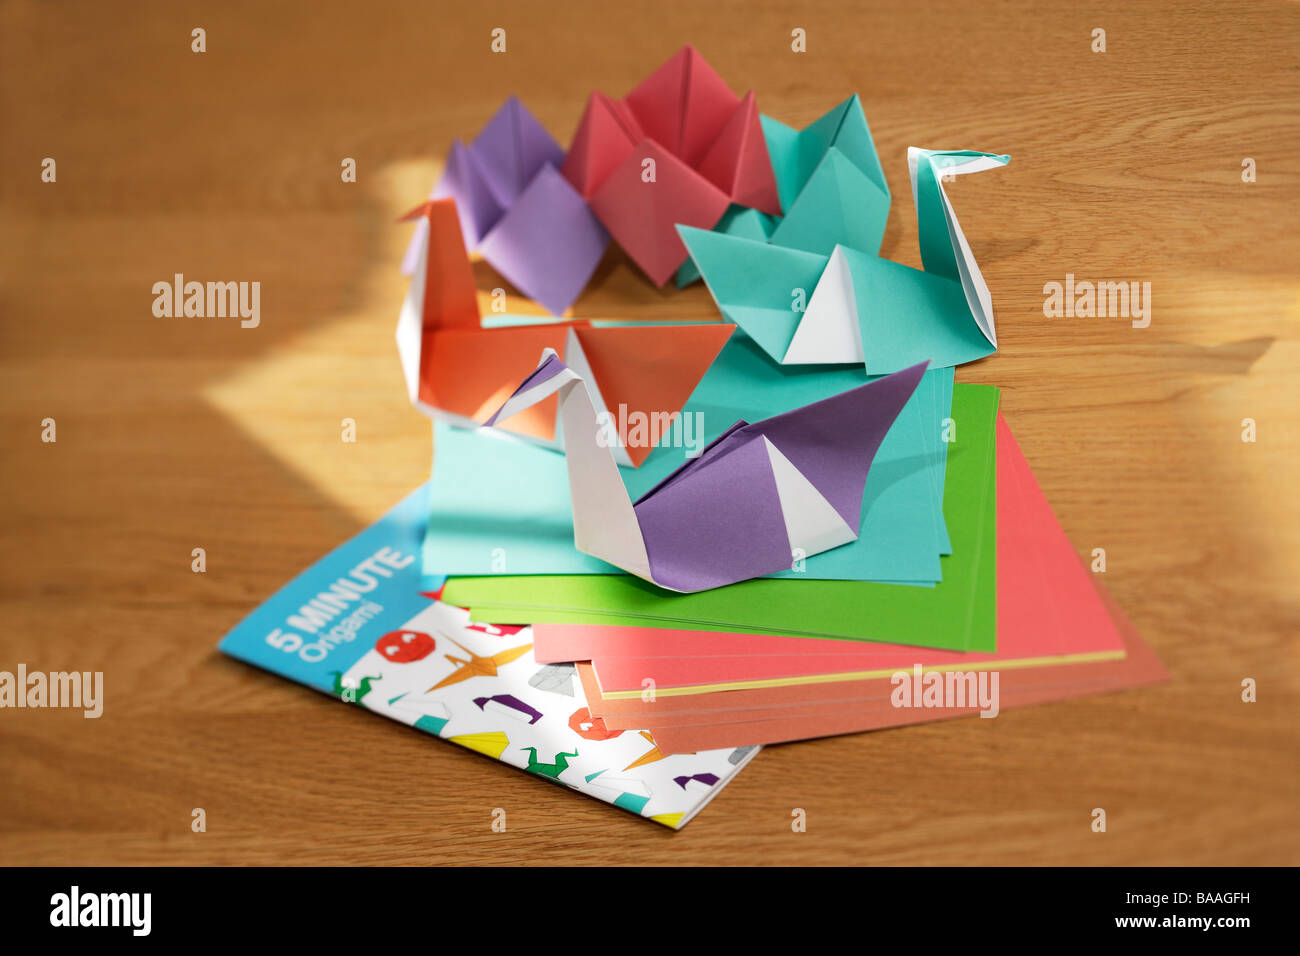 Origami swans Making things from paper - Stock Image